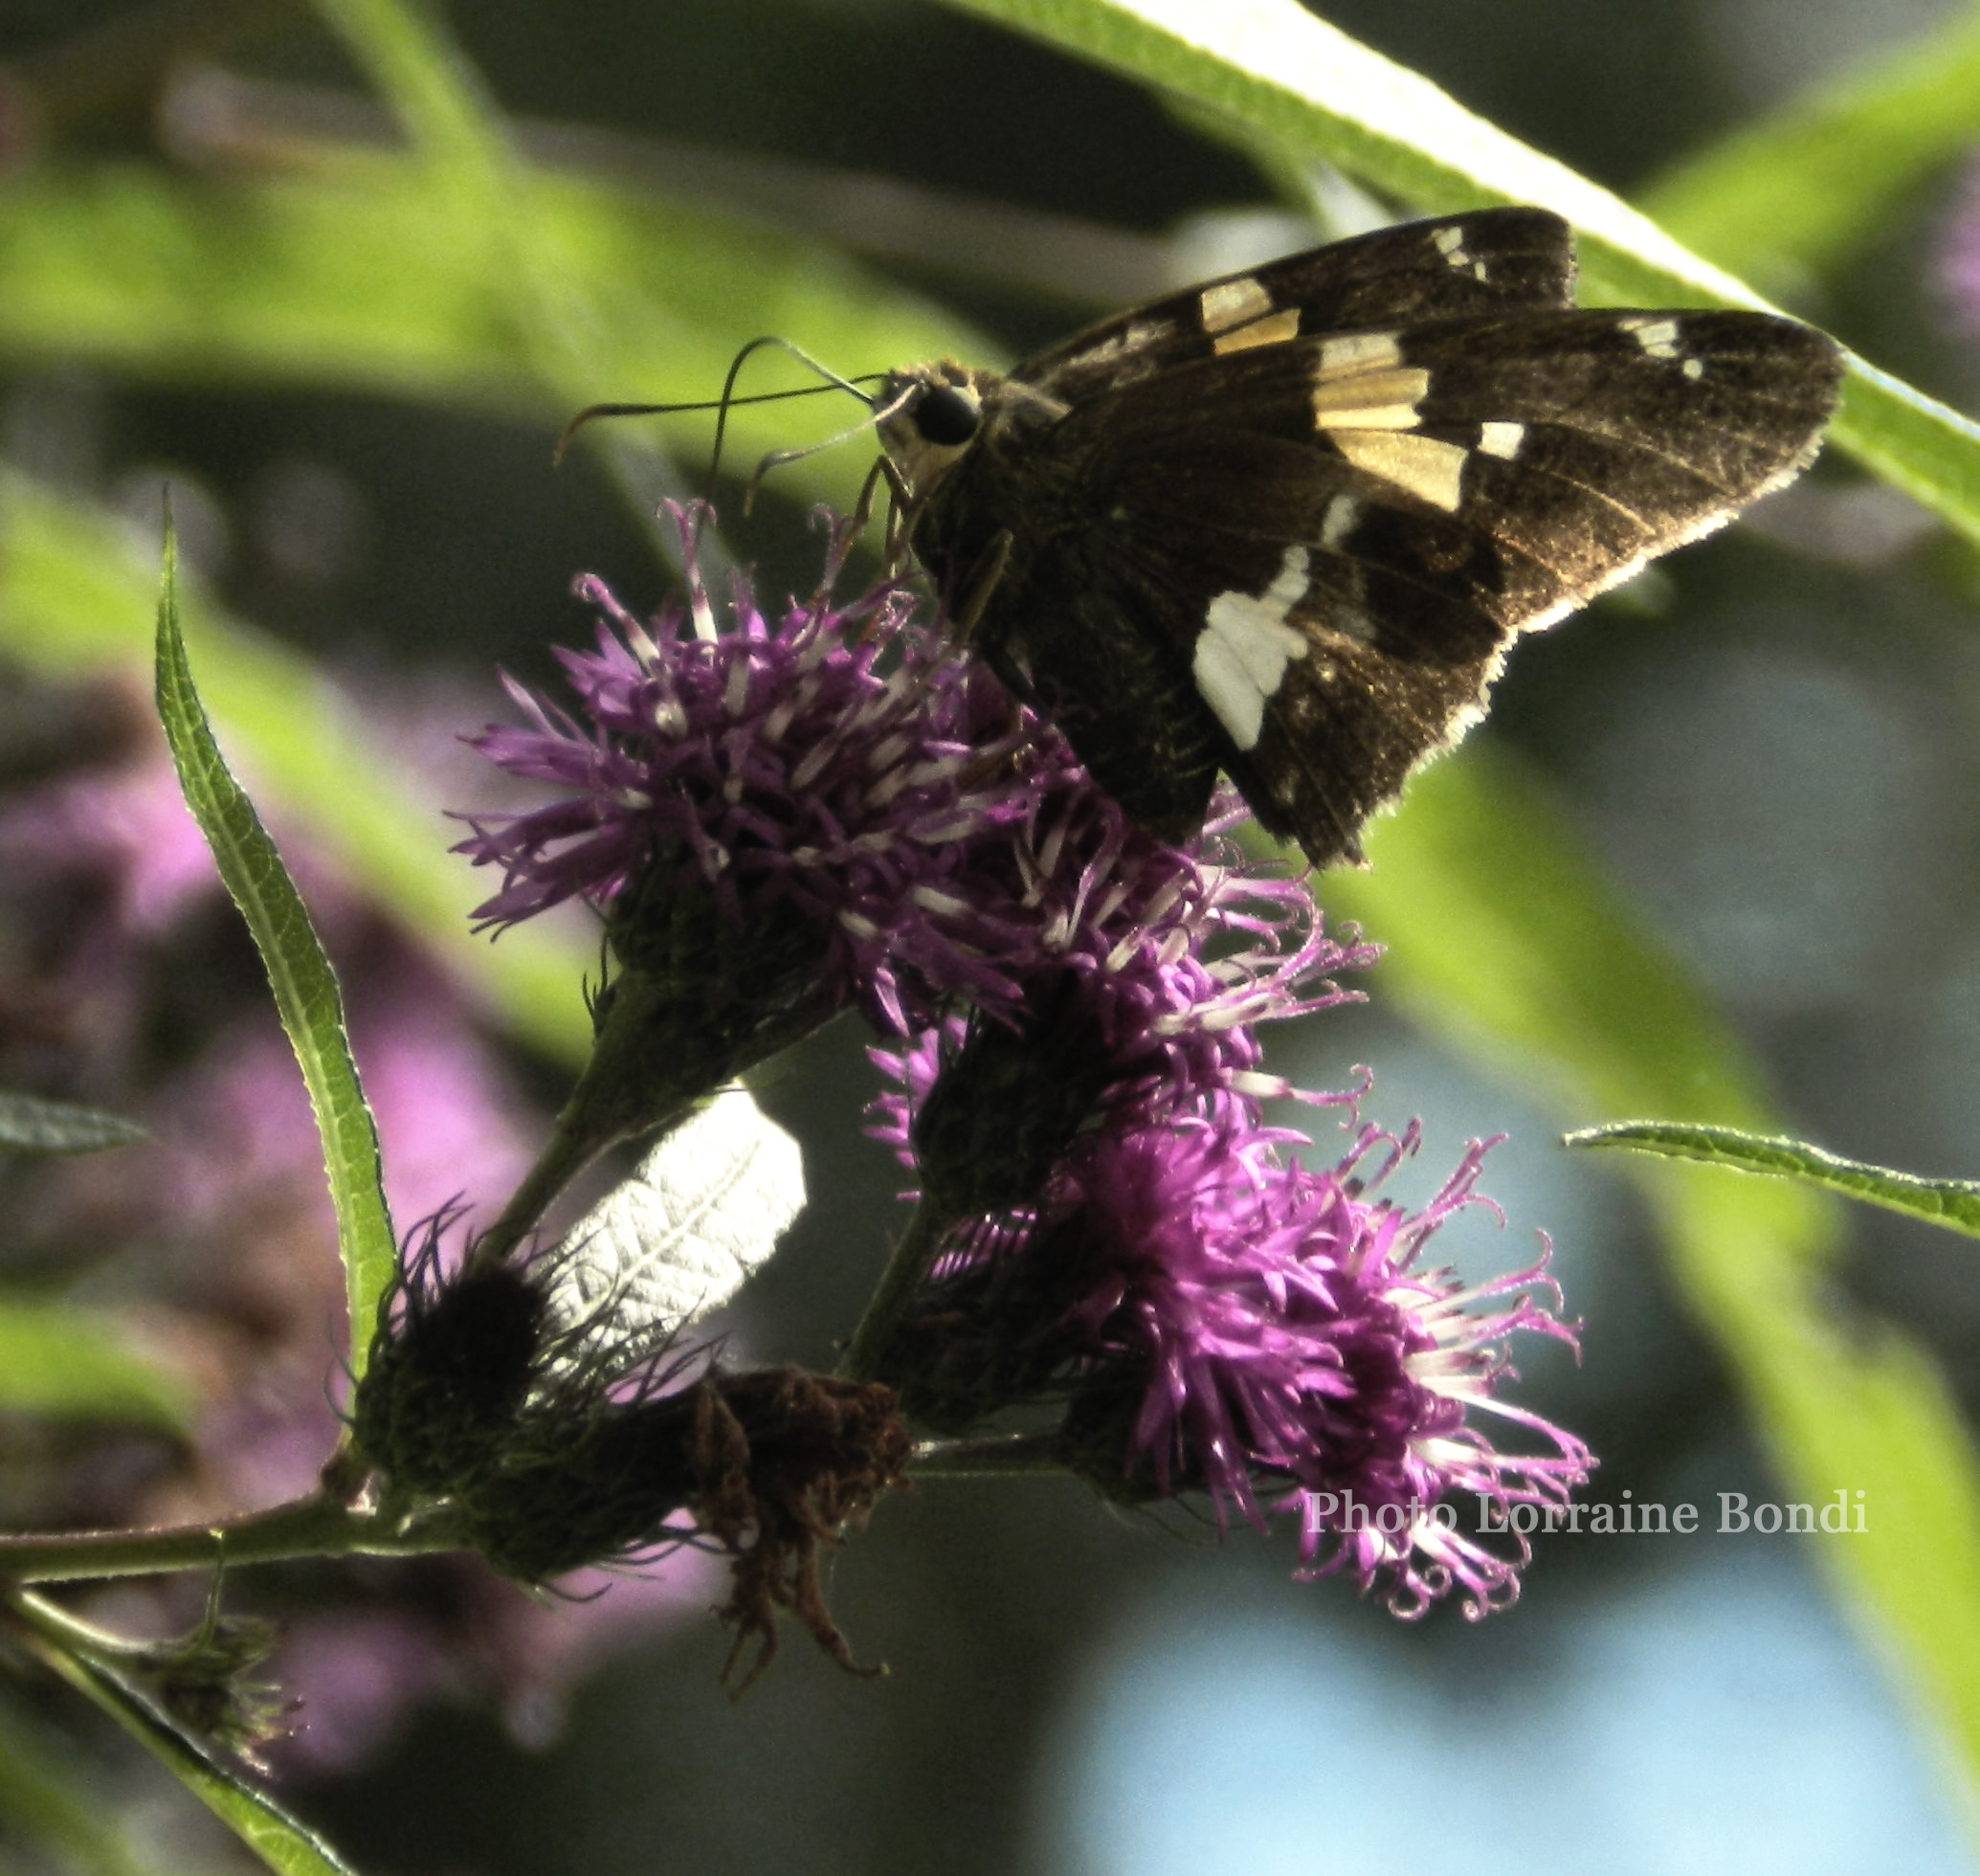 A little Skipper rests on a flower